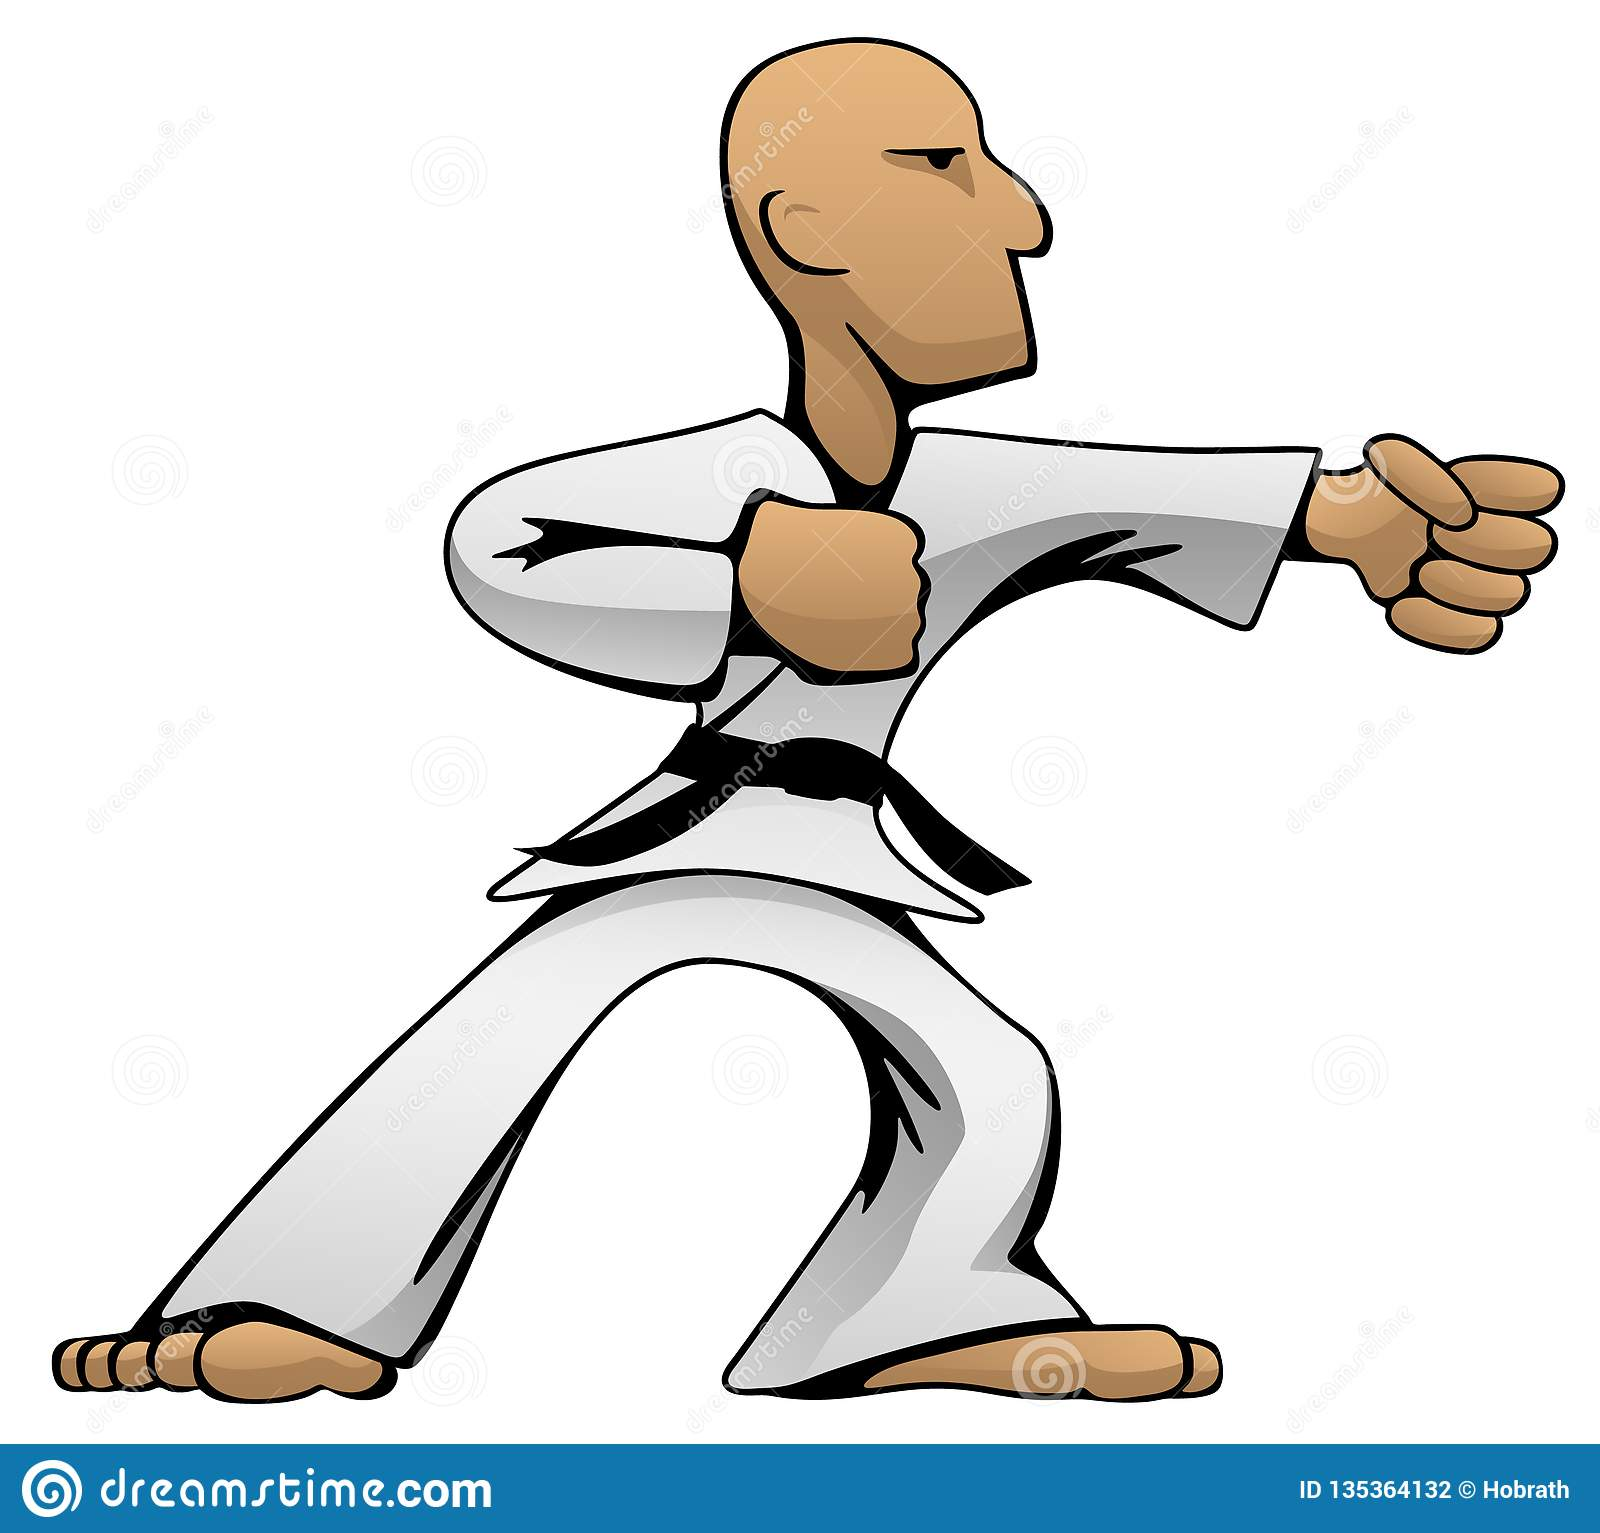 Martial Arts Karate Guy Cartoon Vector Color Illustration